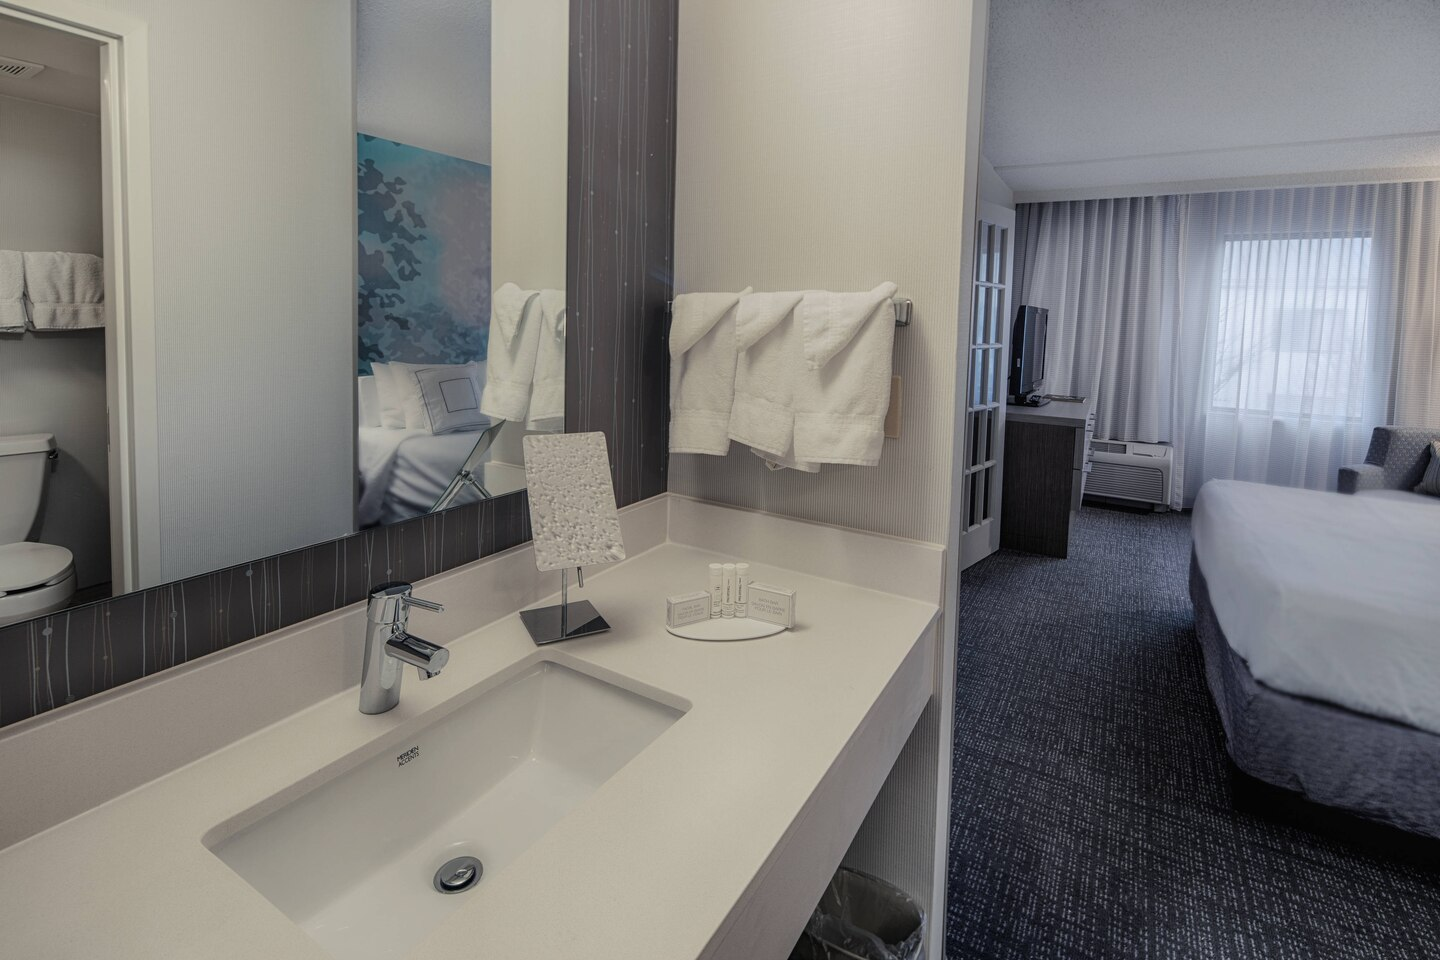 https://www.hotelsbyday.com/_data/default-hotel_image/4/22089/dfwcy-bathroom-0054-hor-clsc.jpg